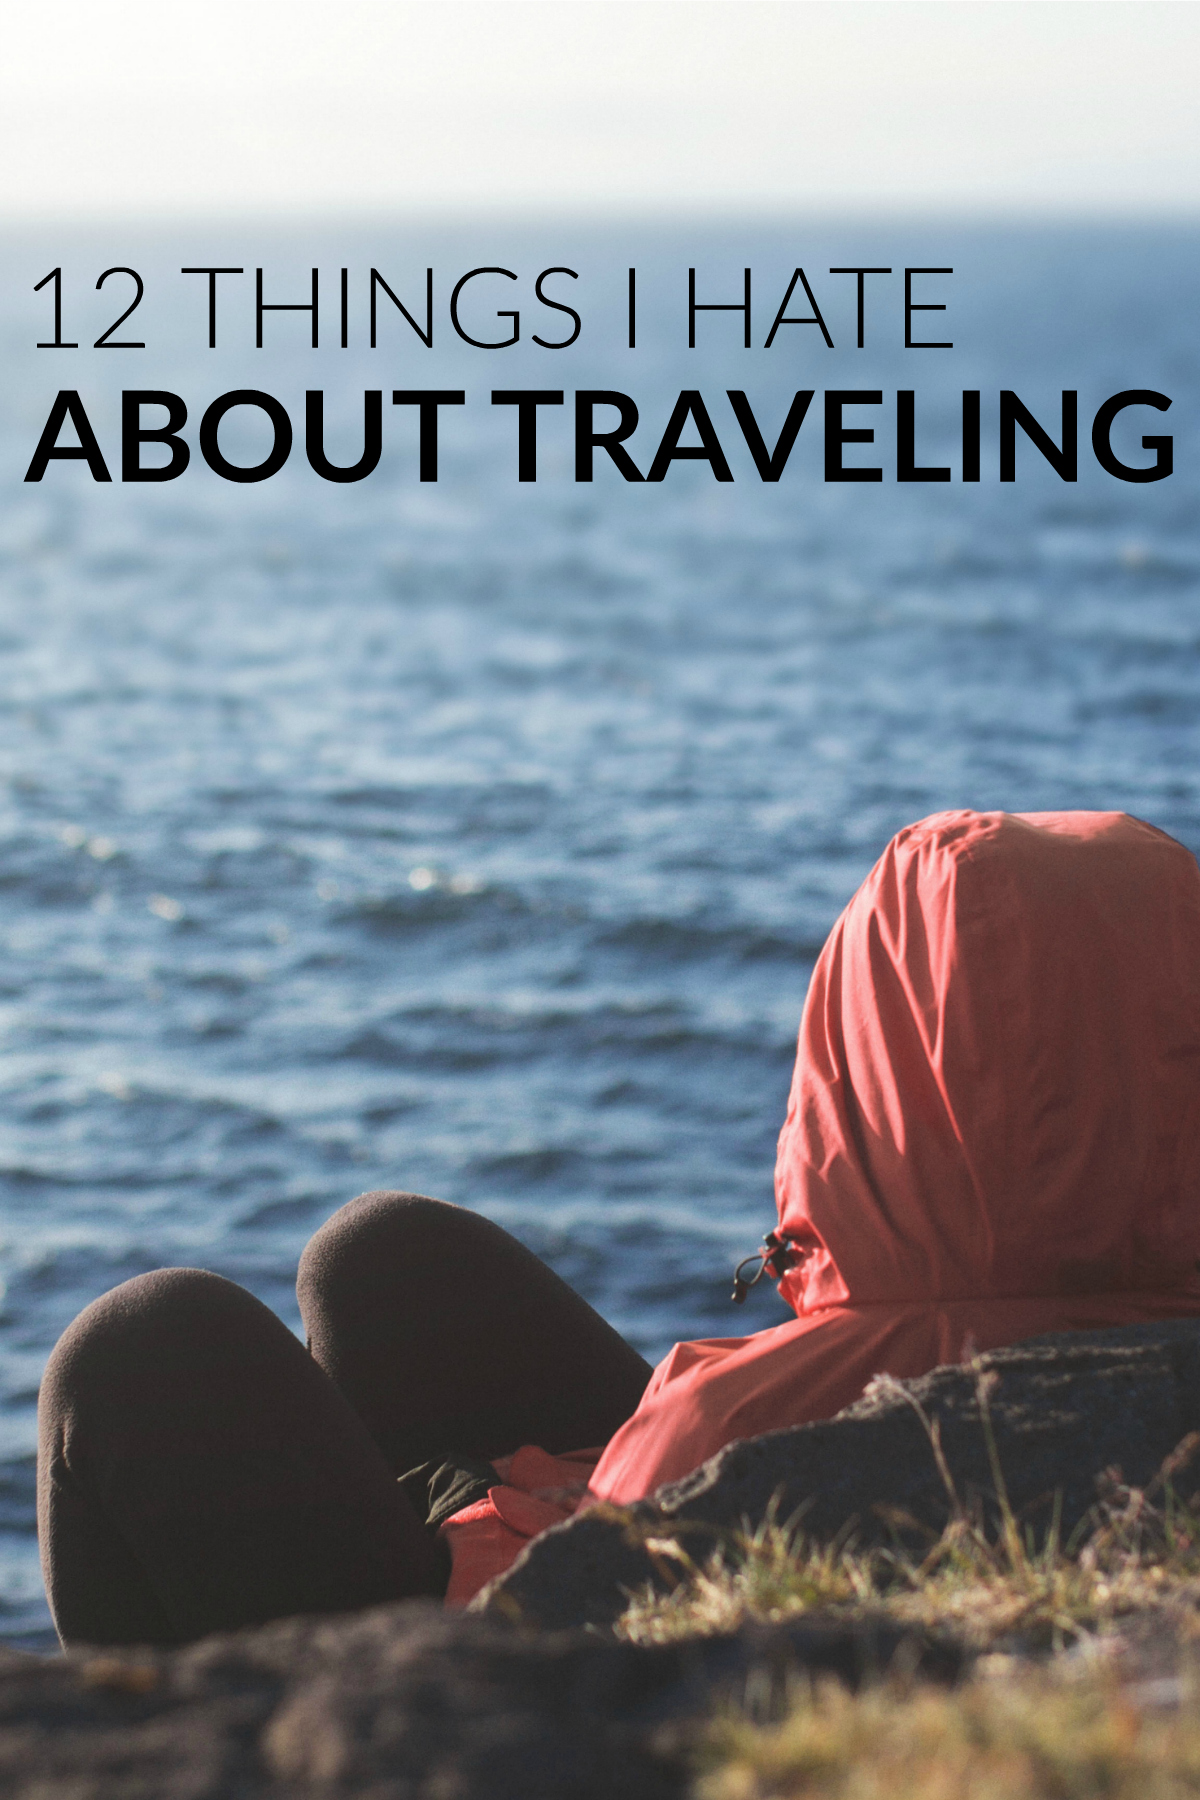 Traveling isn't always fun, here are 7 things you need to watch out for.